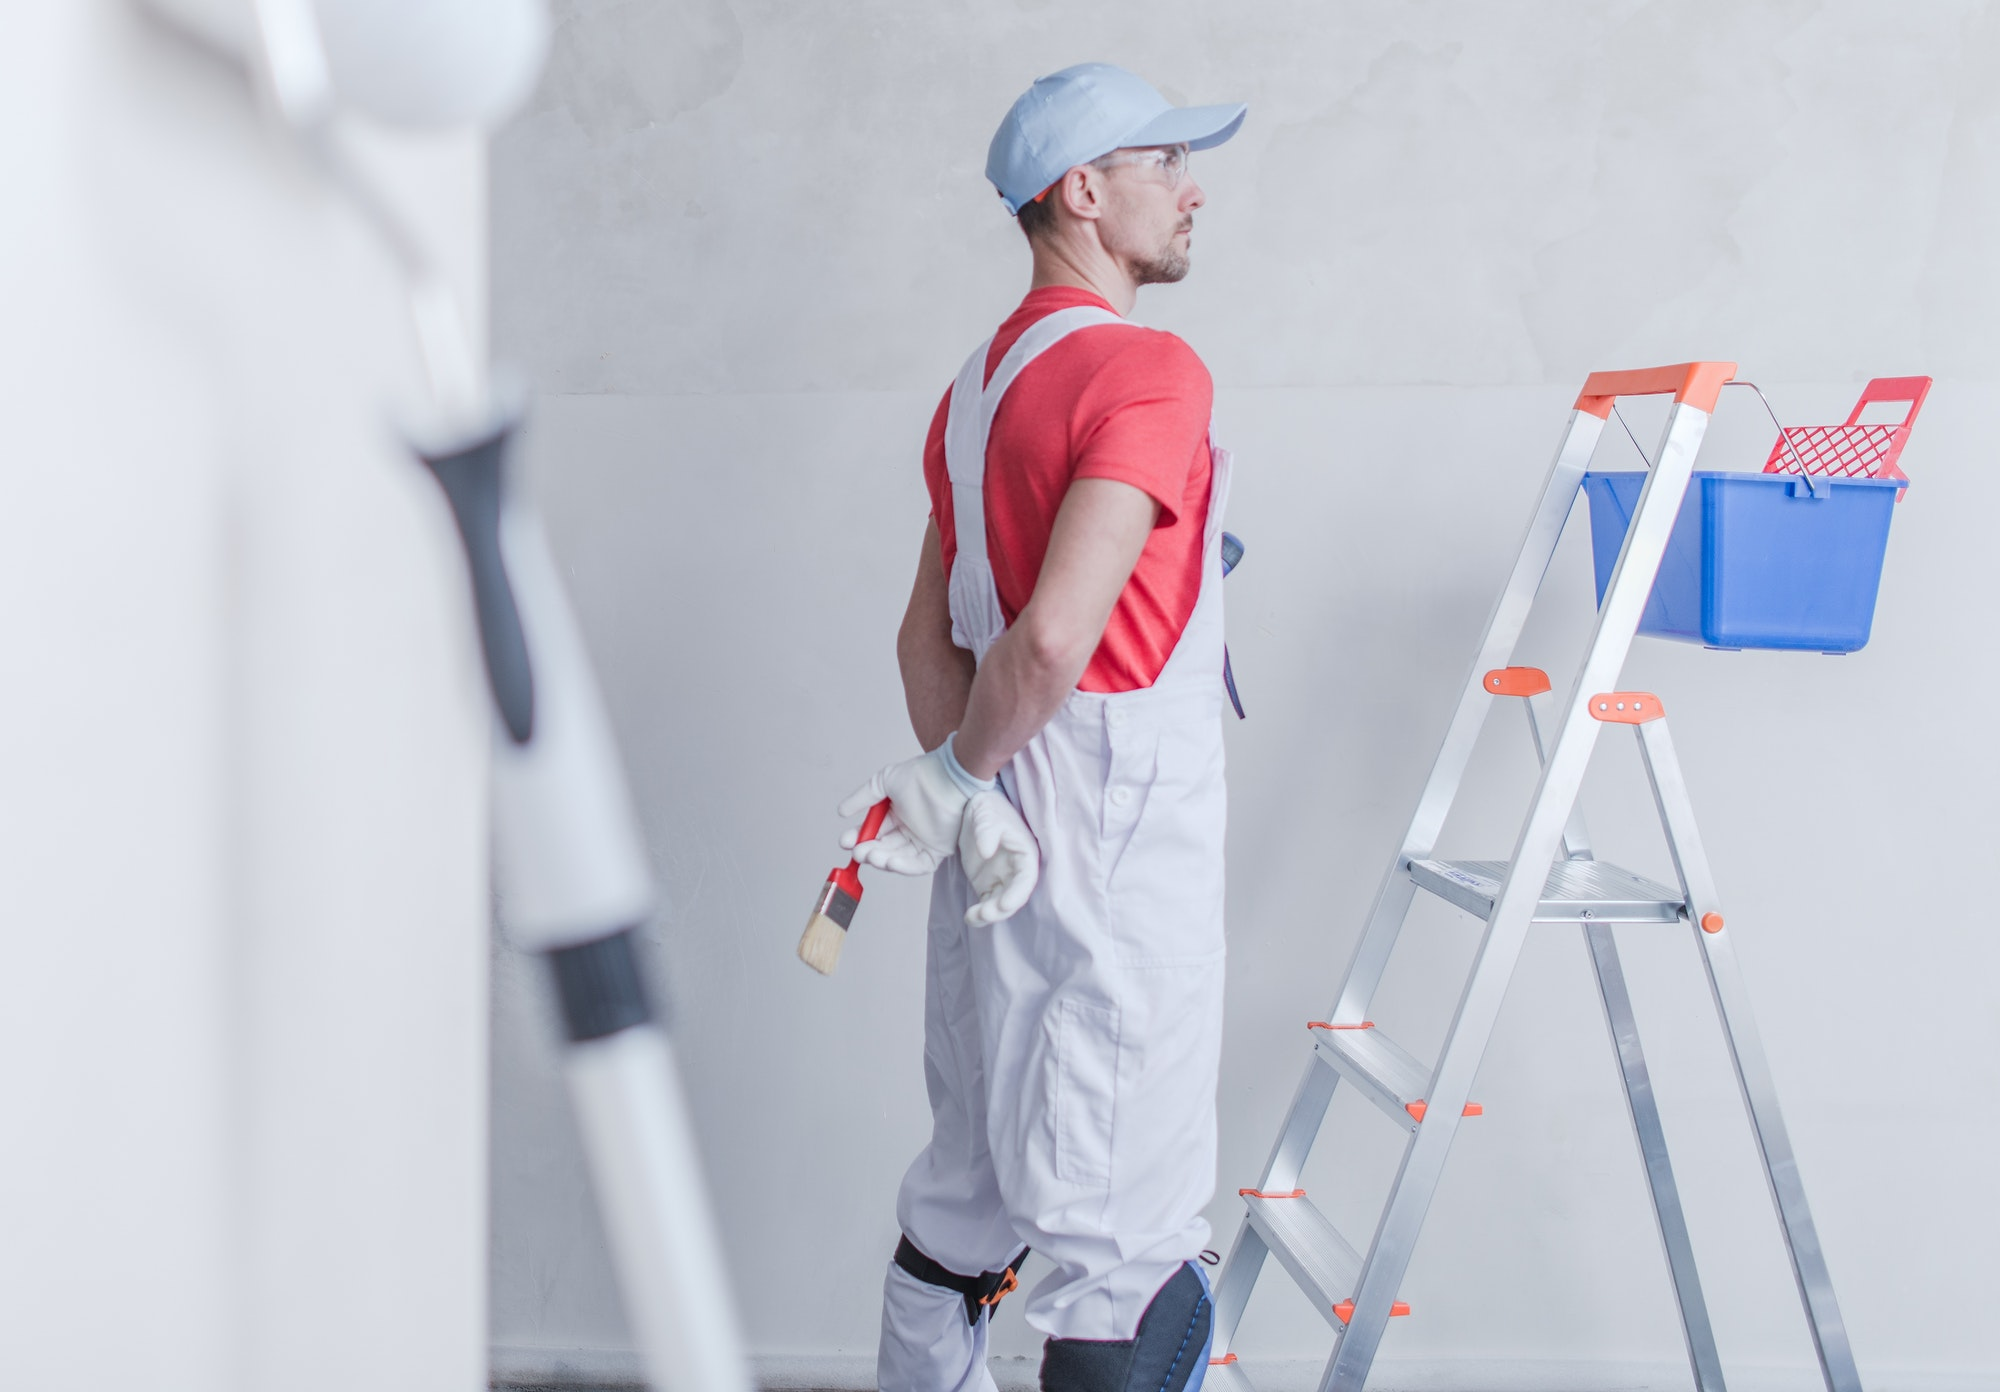 Room Painter and His Job